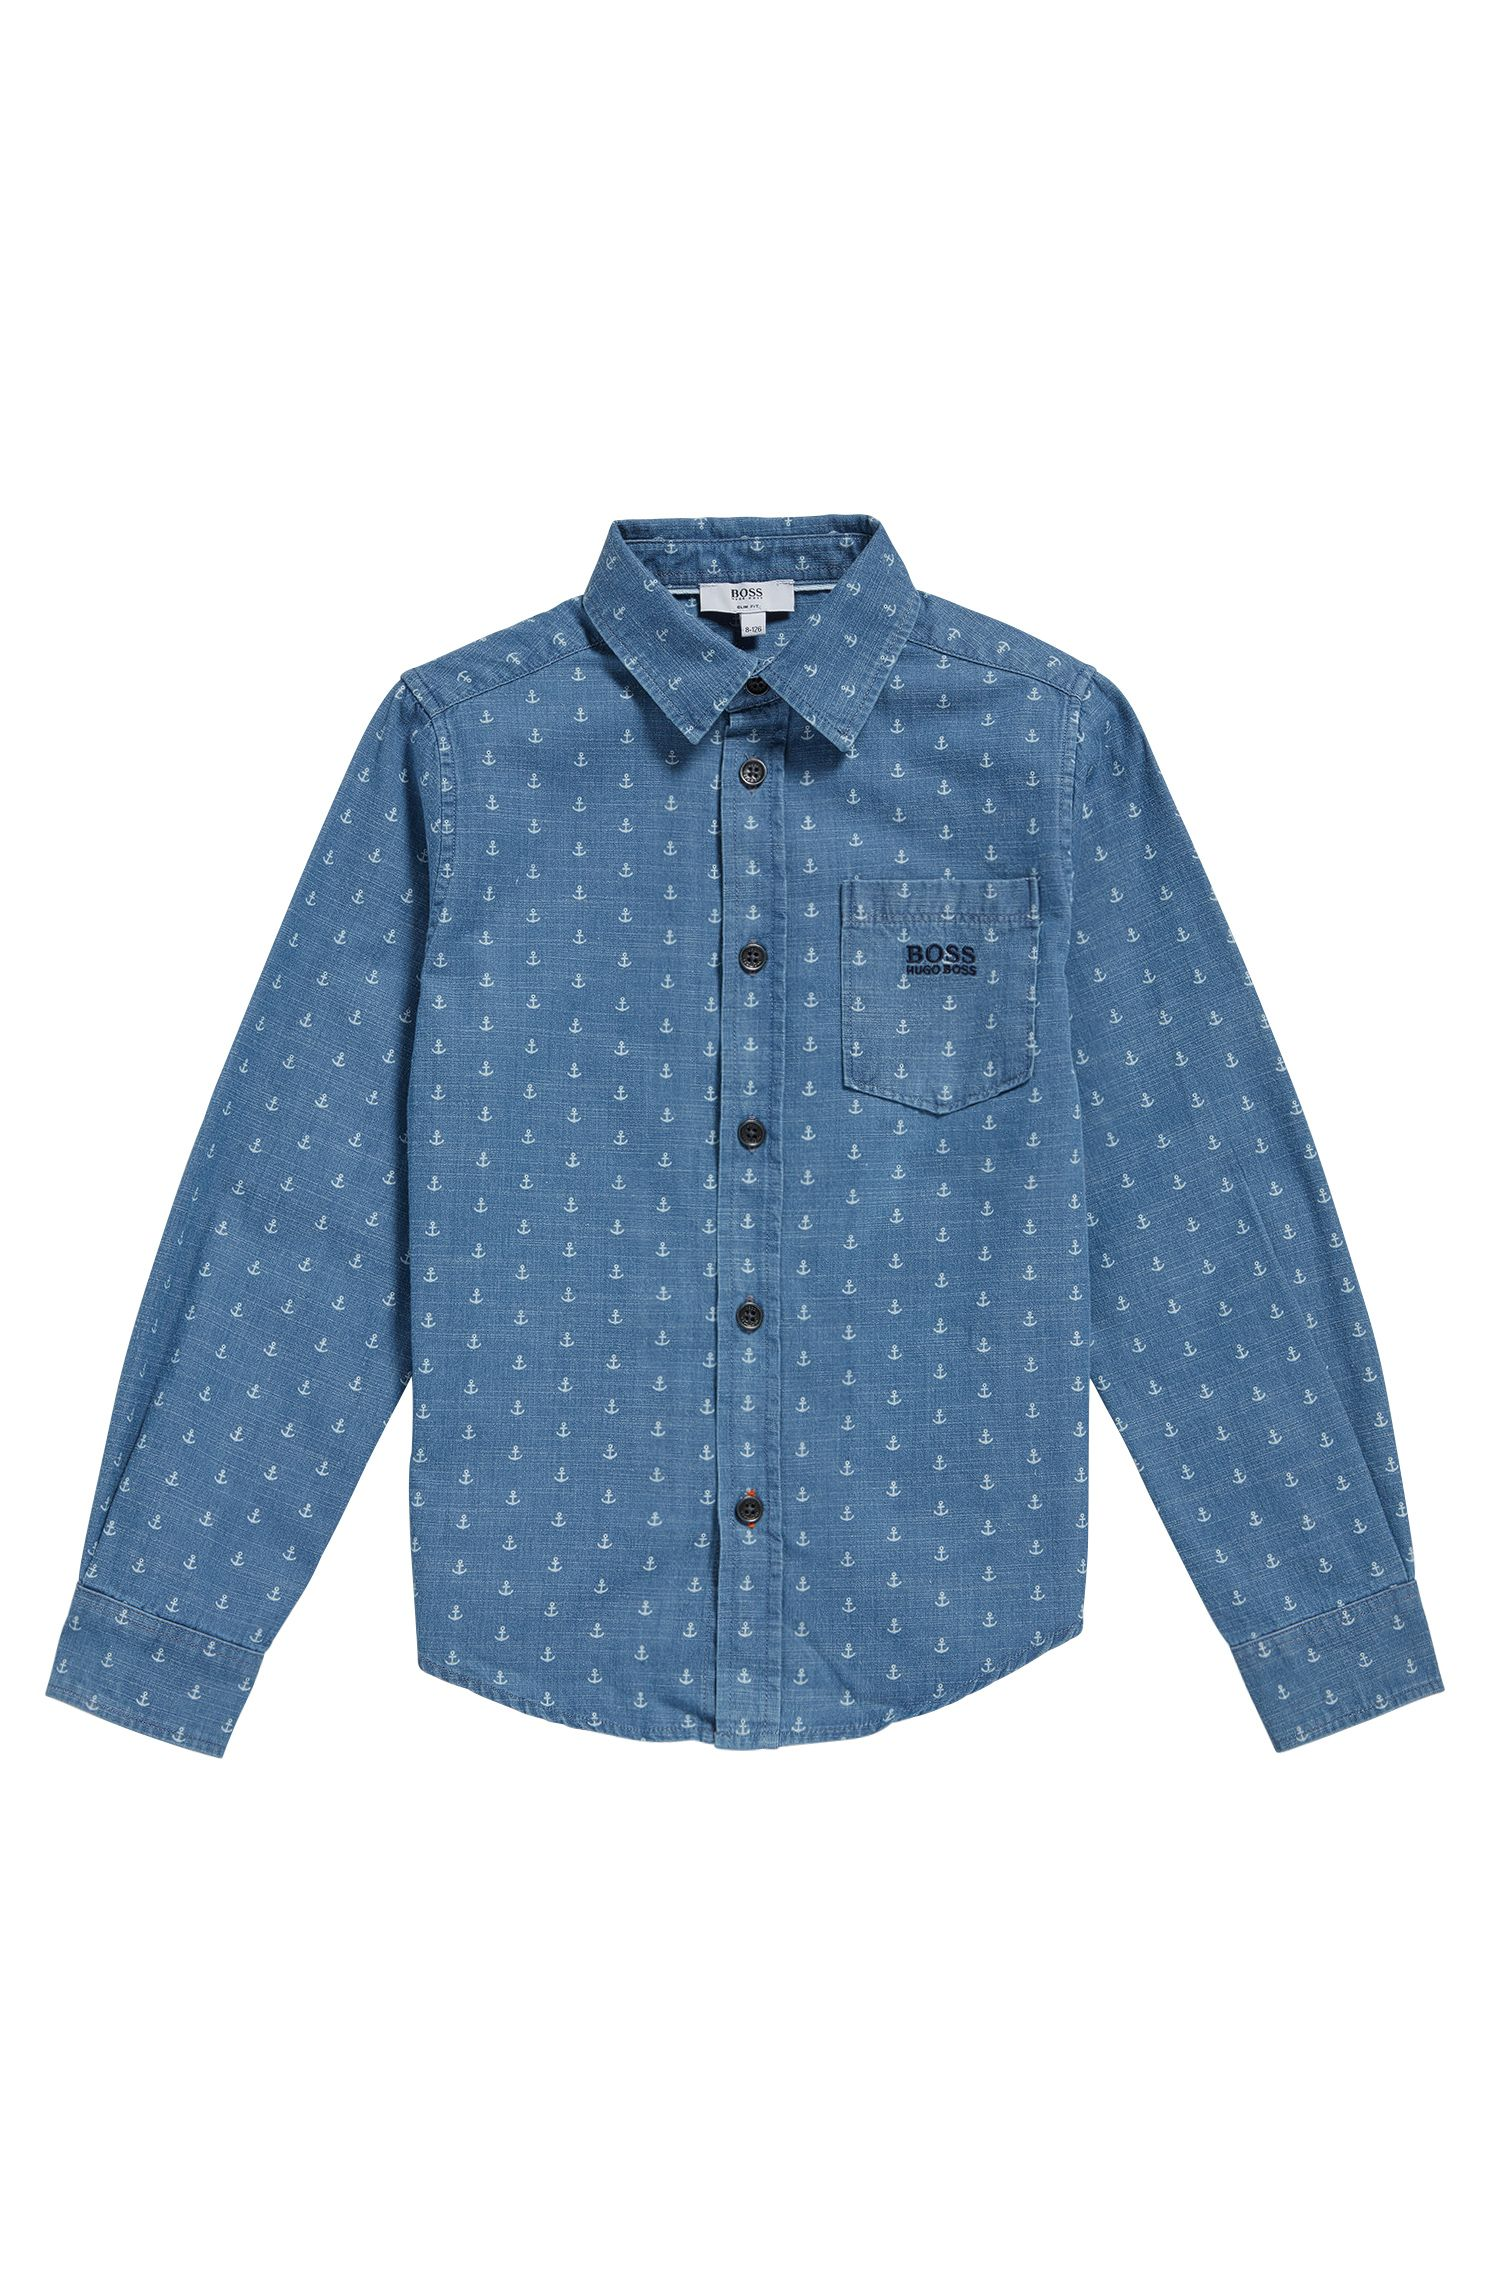 Kids' shirt in cotton with all-over print: 'J25A88'